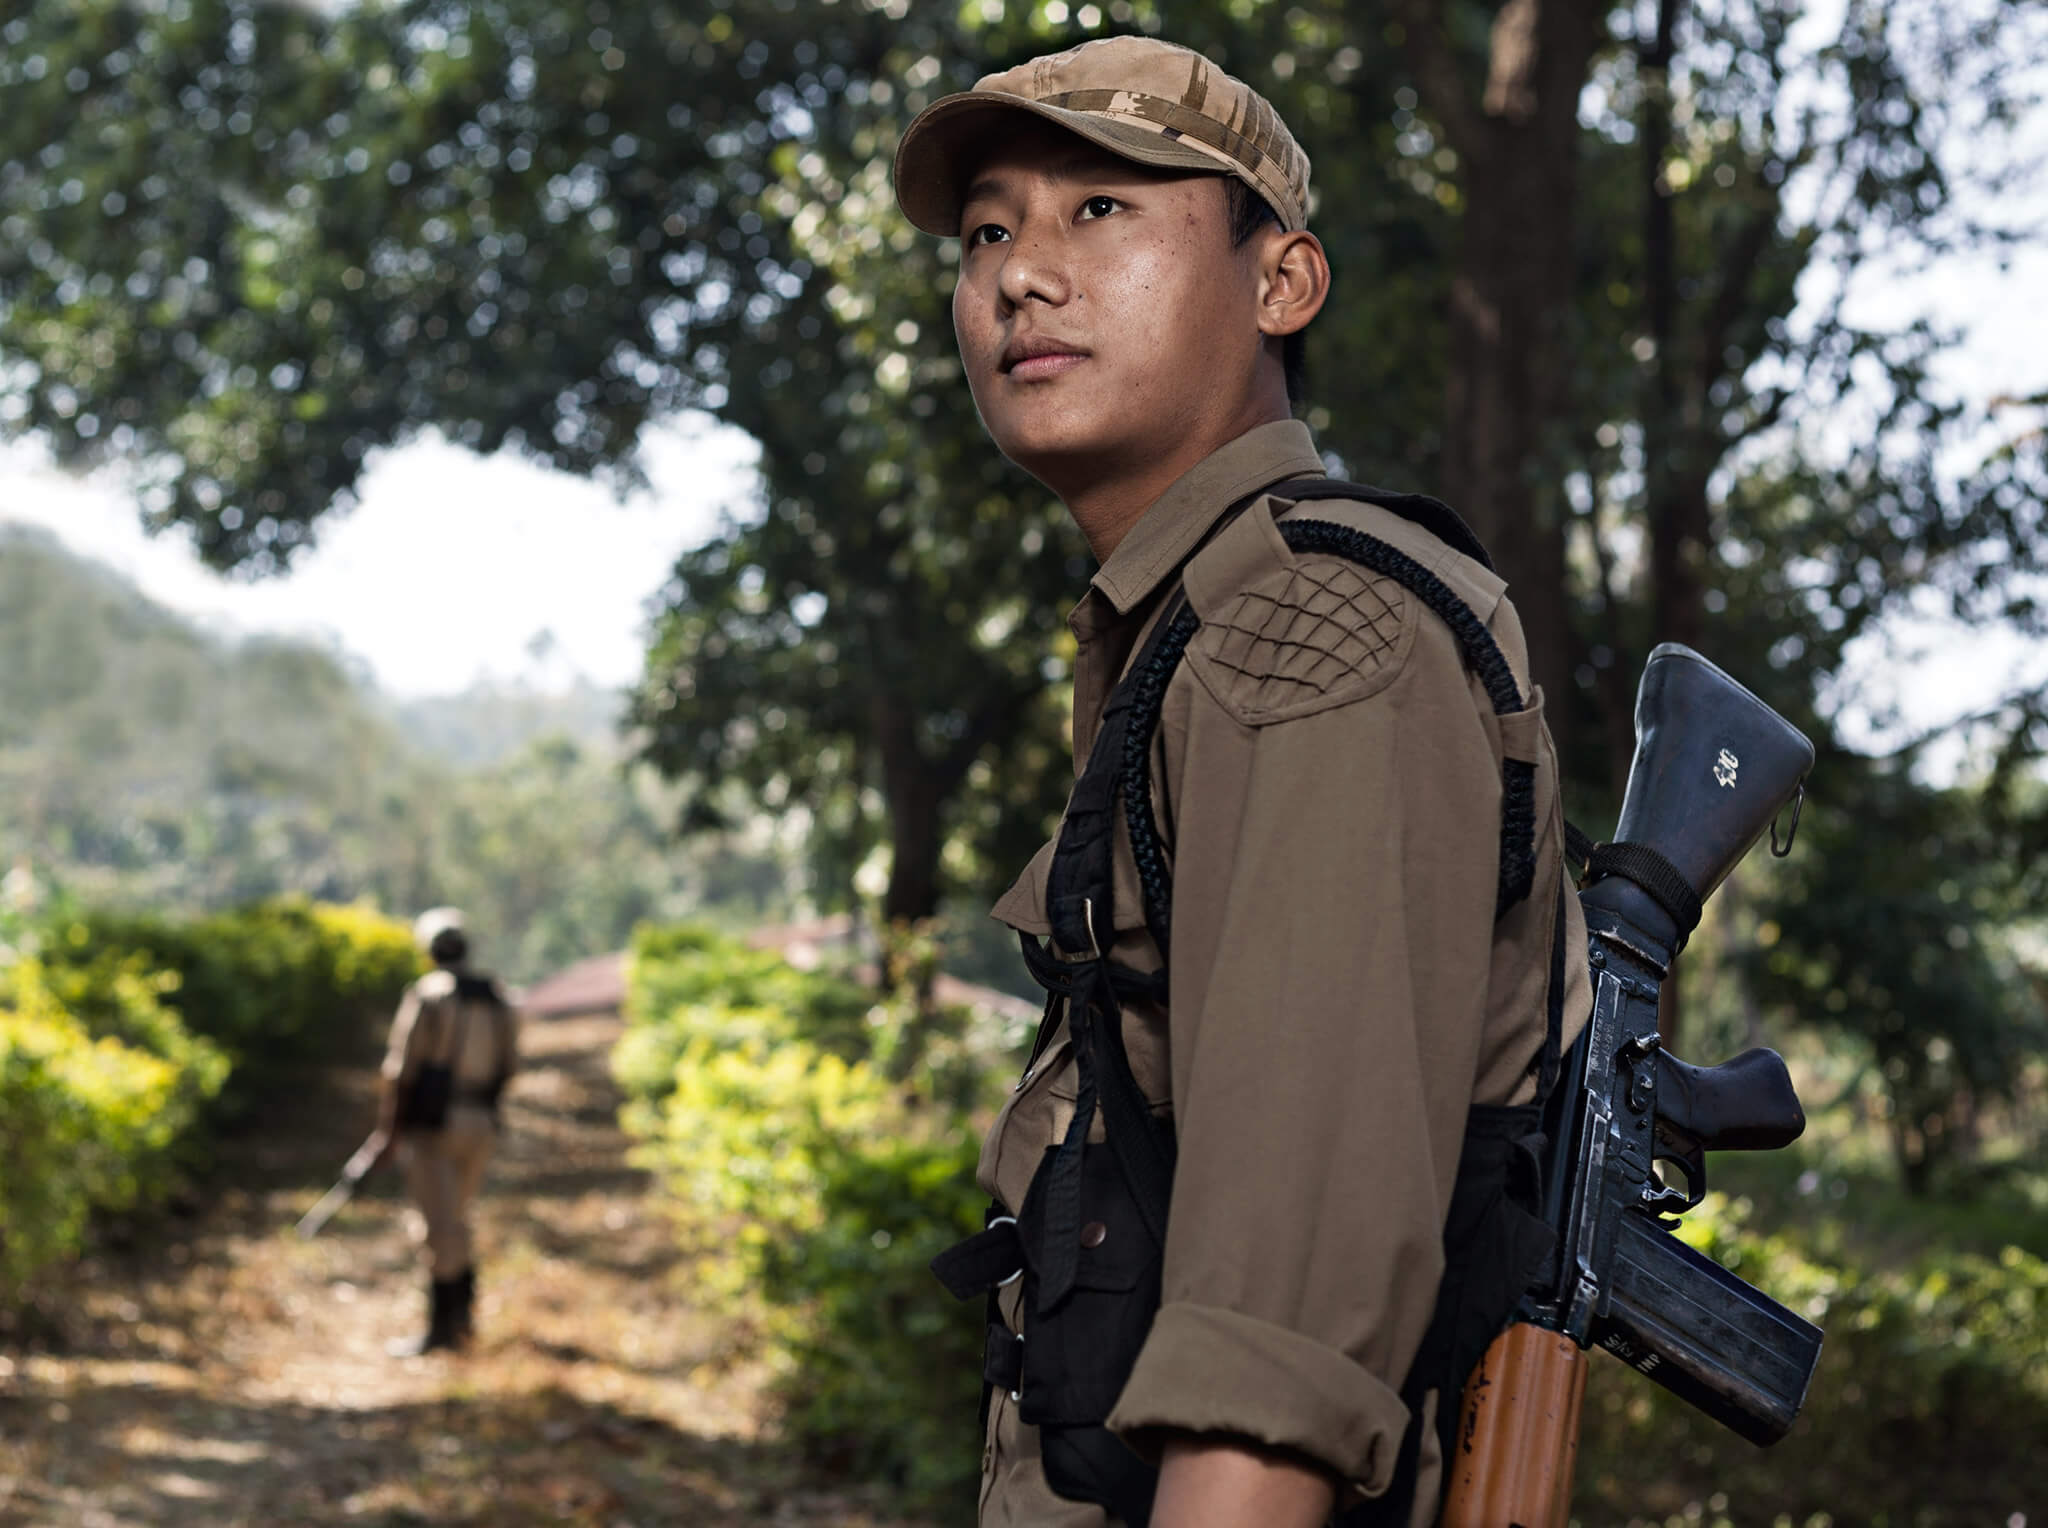 A forest ranger in India is looking towards the right and is in a forest in India